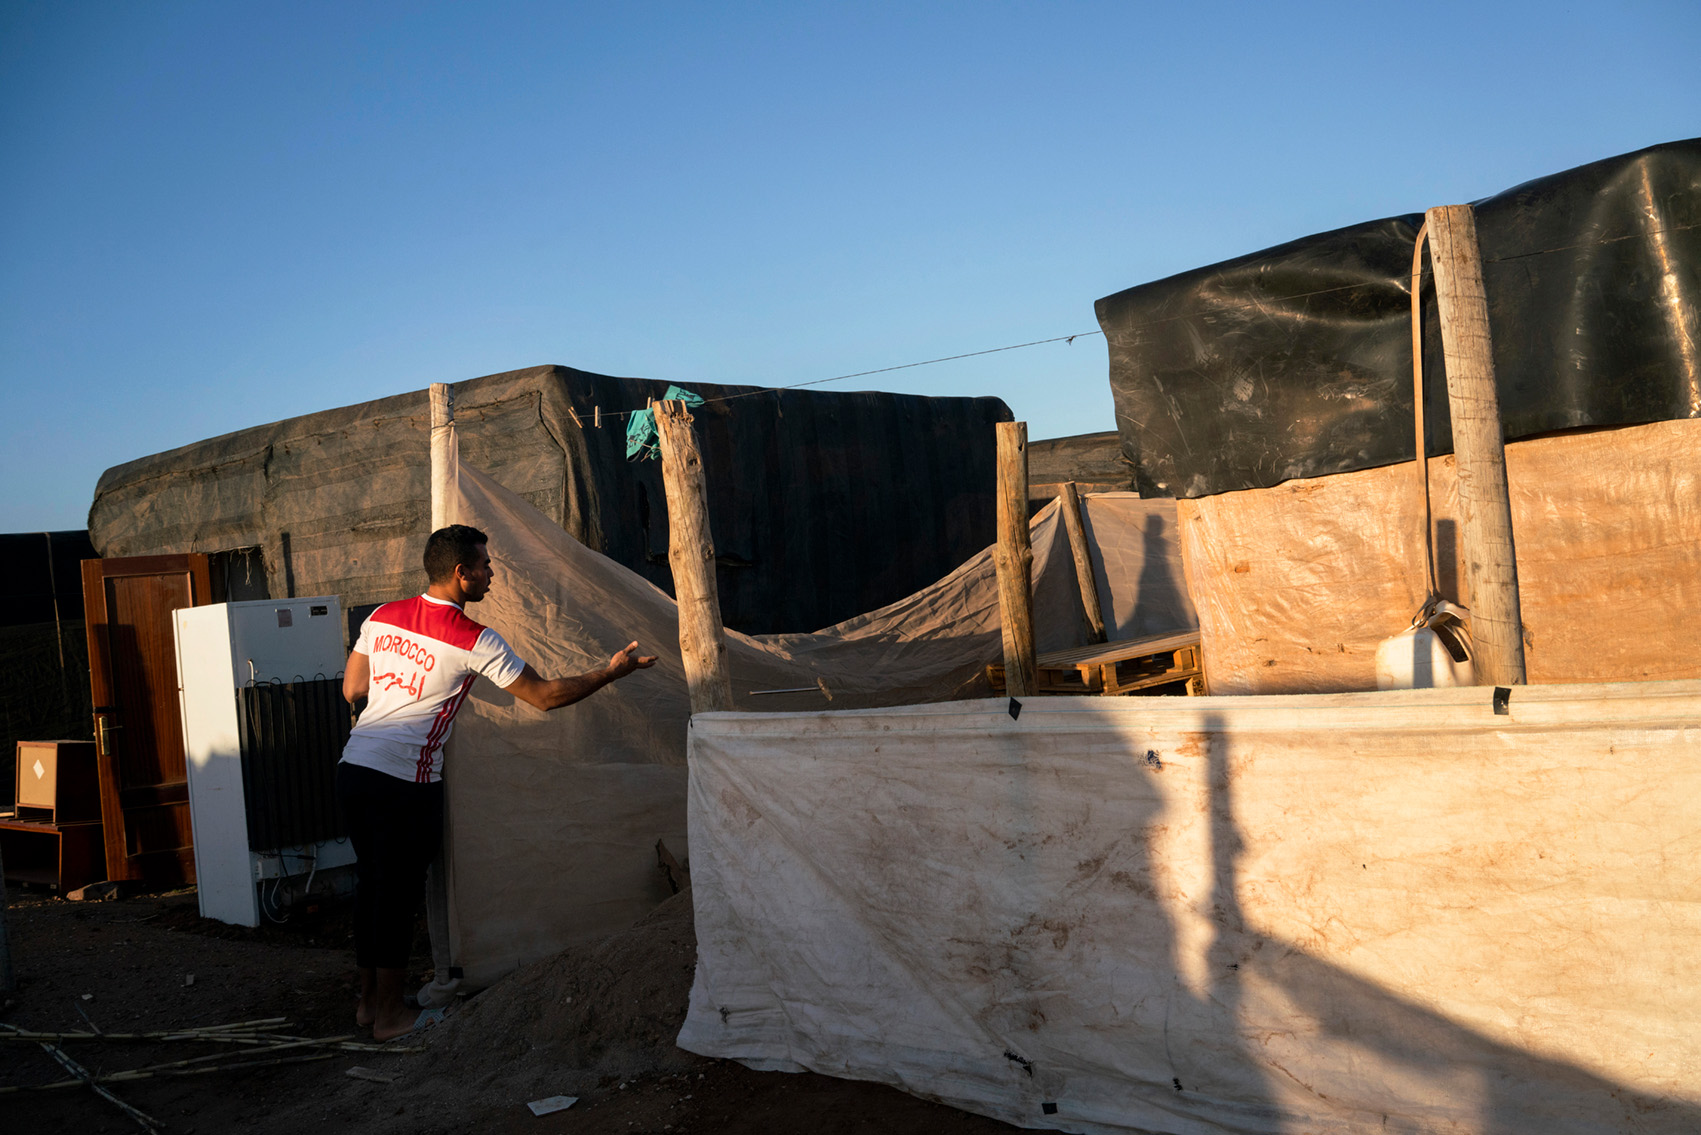 A Moroccan migrant worker living in a ghetto of self-constructed shovels made of plastic sheeting, Spain.